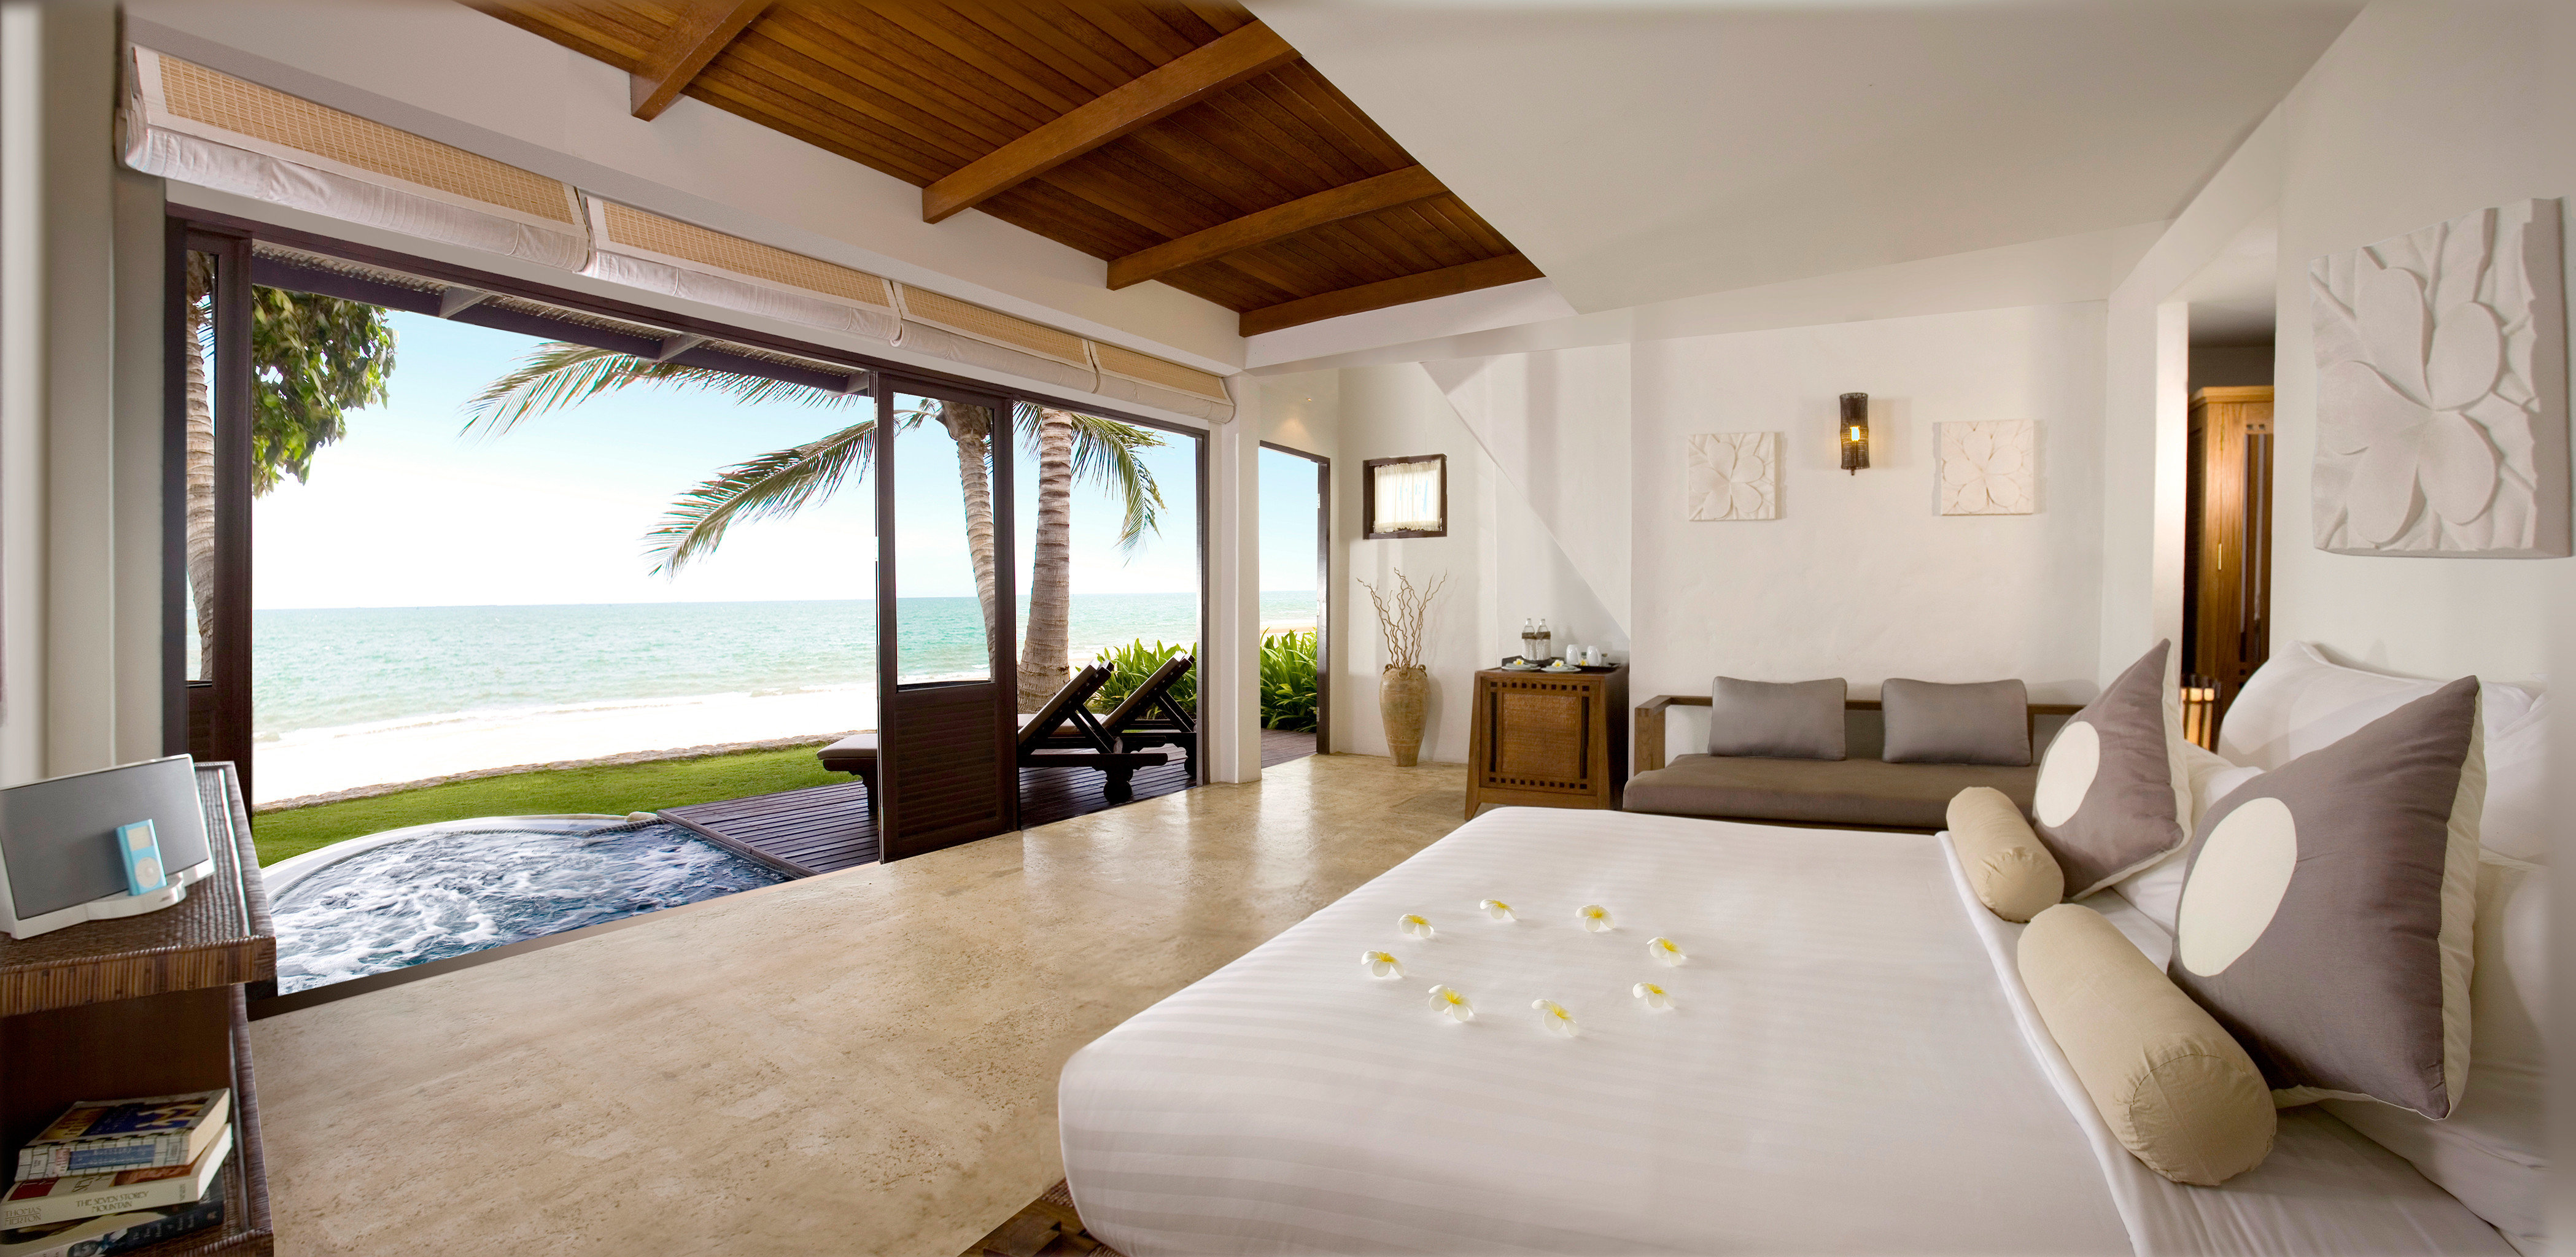 Beachfront Bedroom Ocean Scenic views Suite property Villa cottage home Resort farmhouse flat